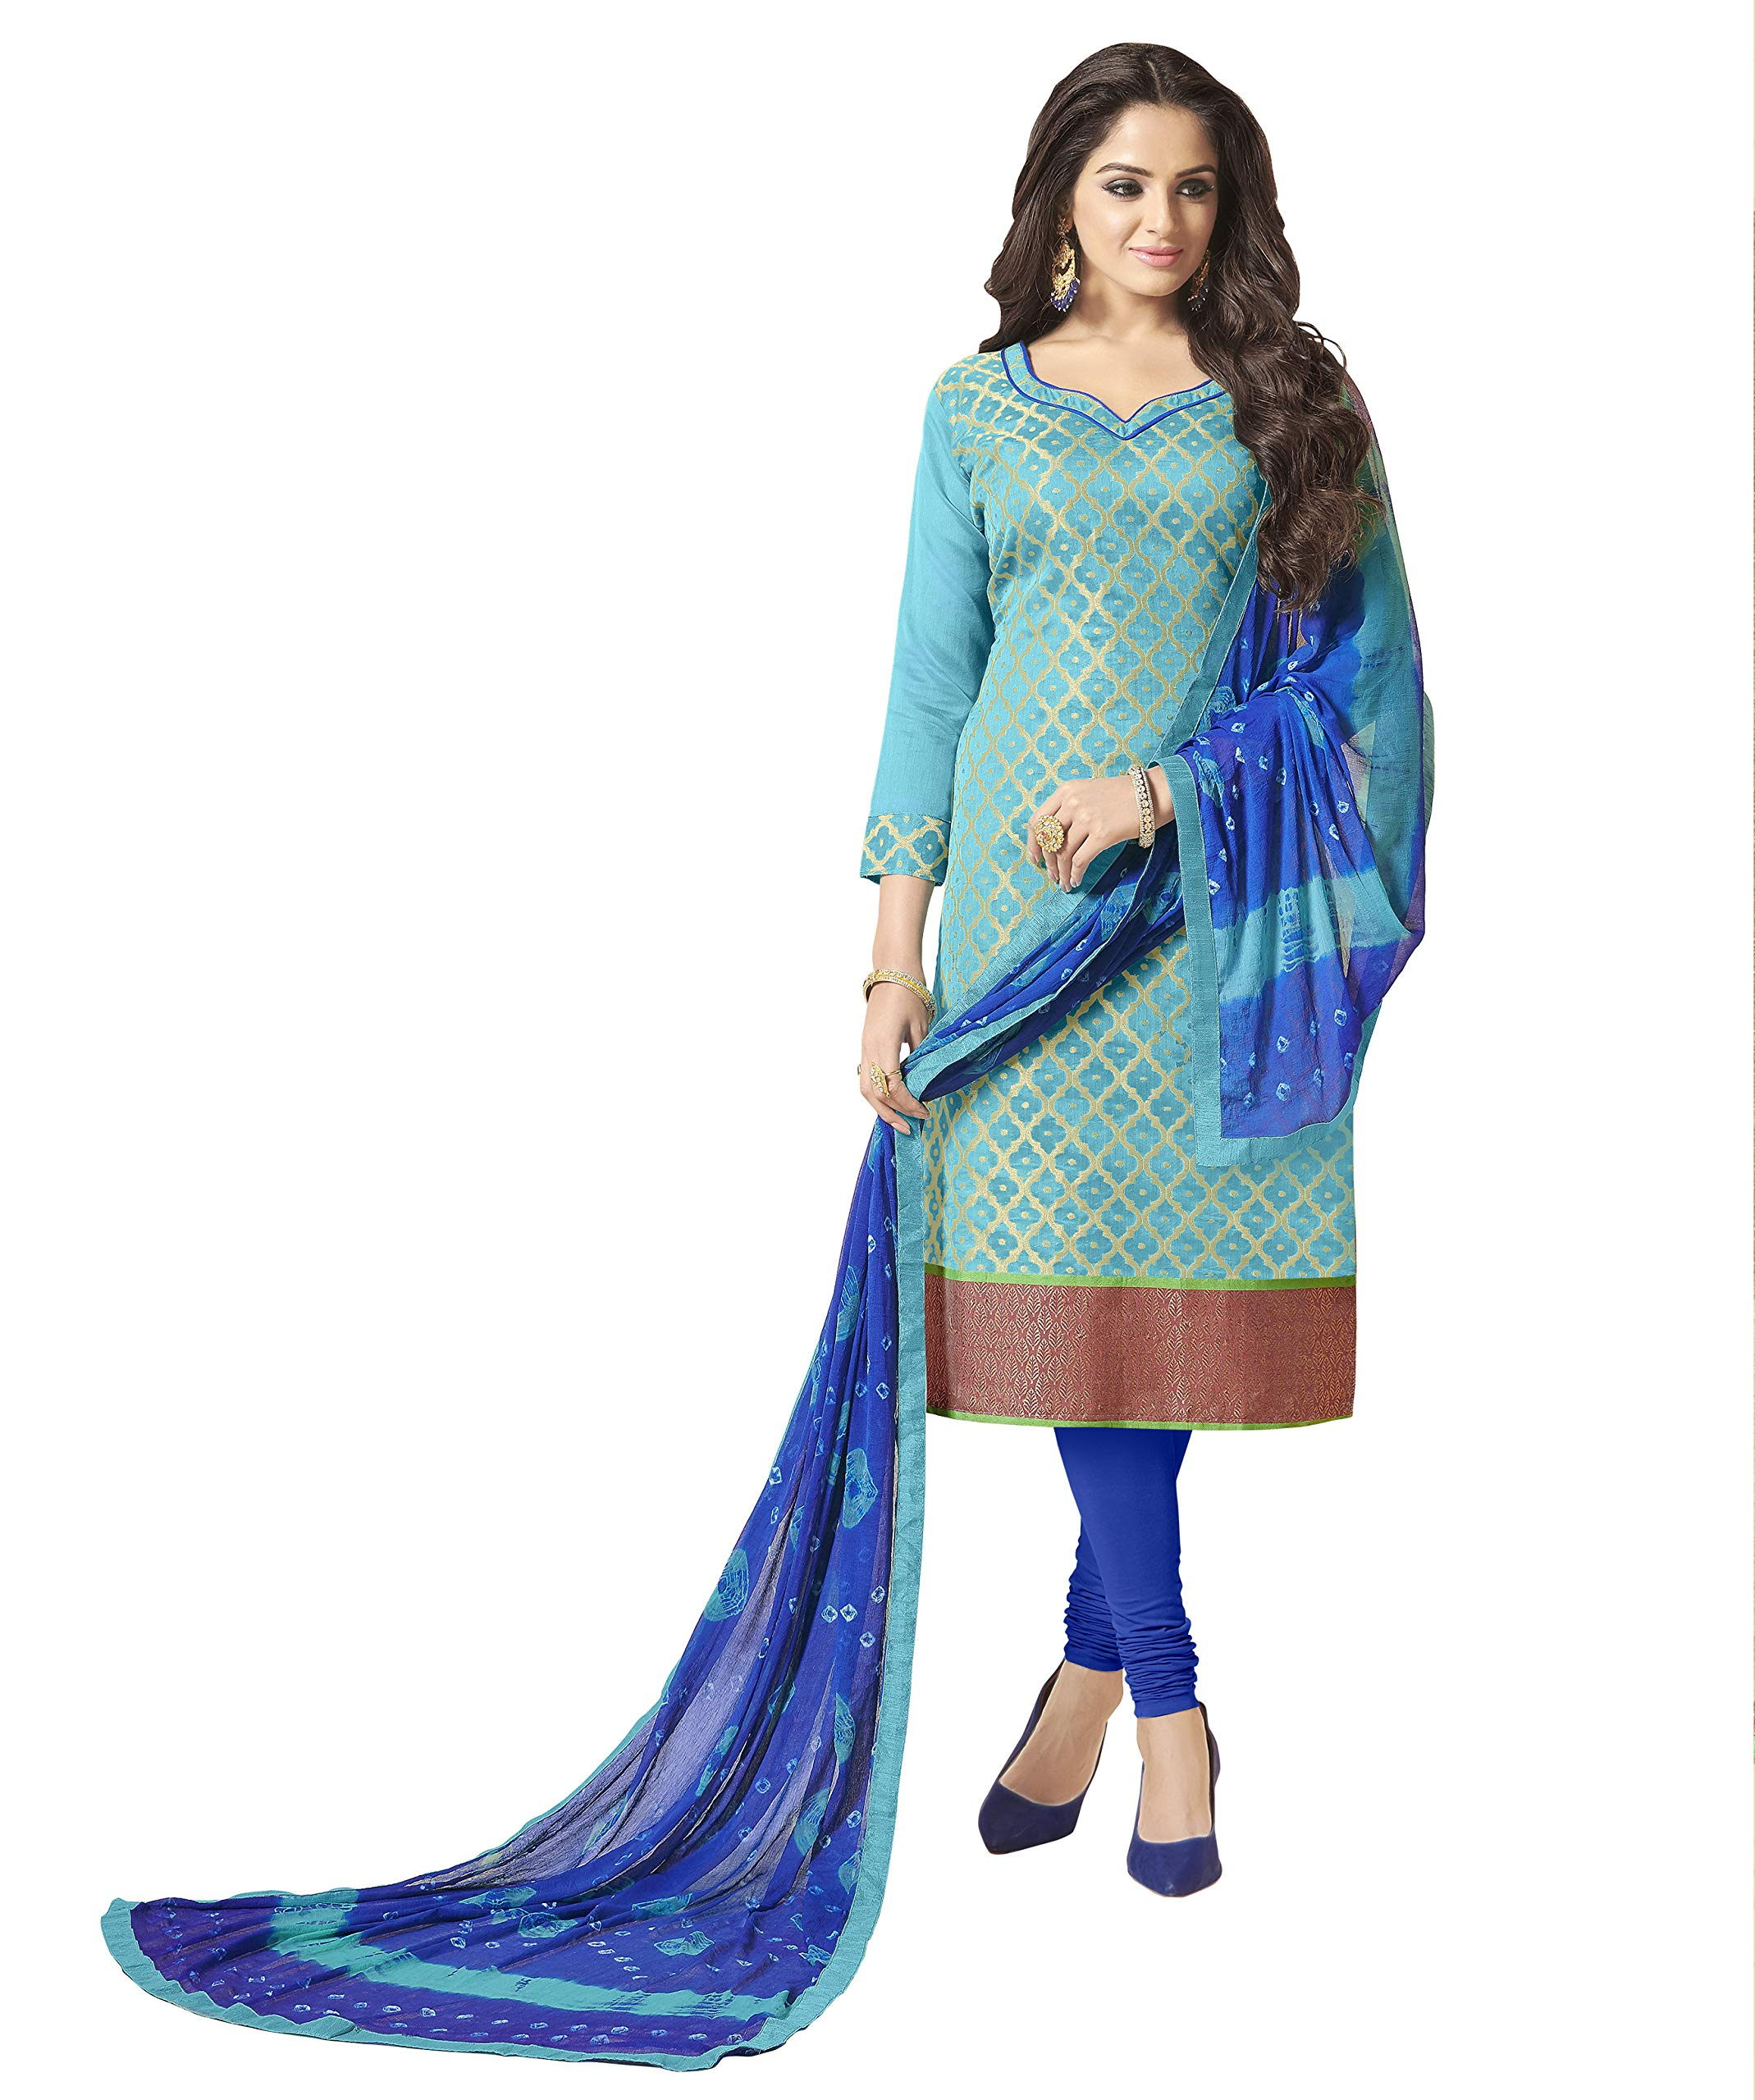 Viva N Diva Salwar Suit Dupatta For Women S Sky Blue Banarasi Art